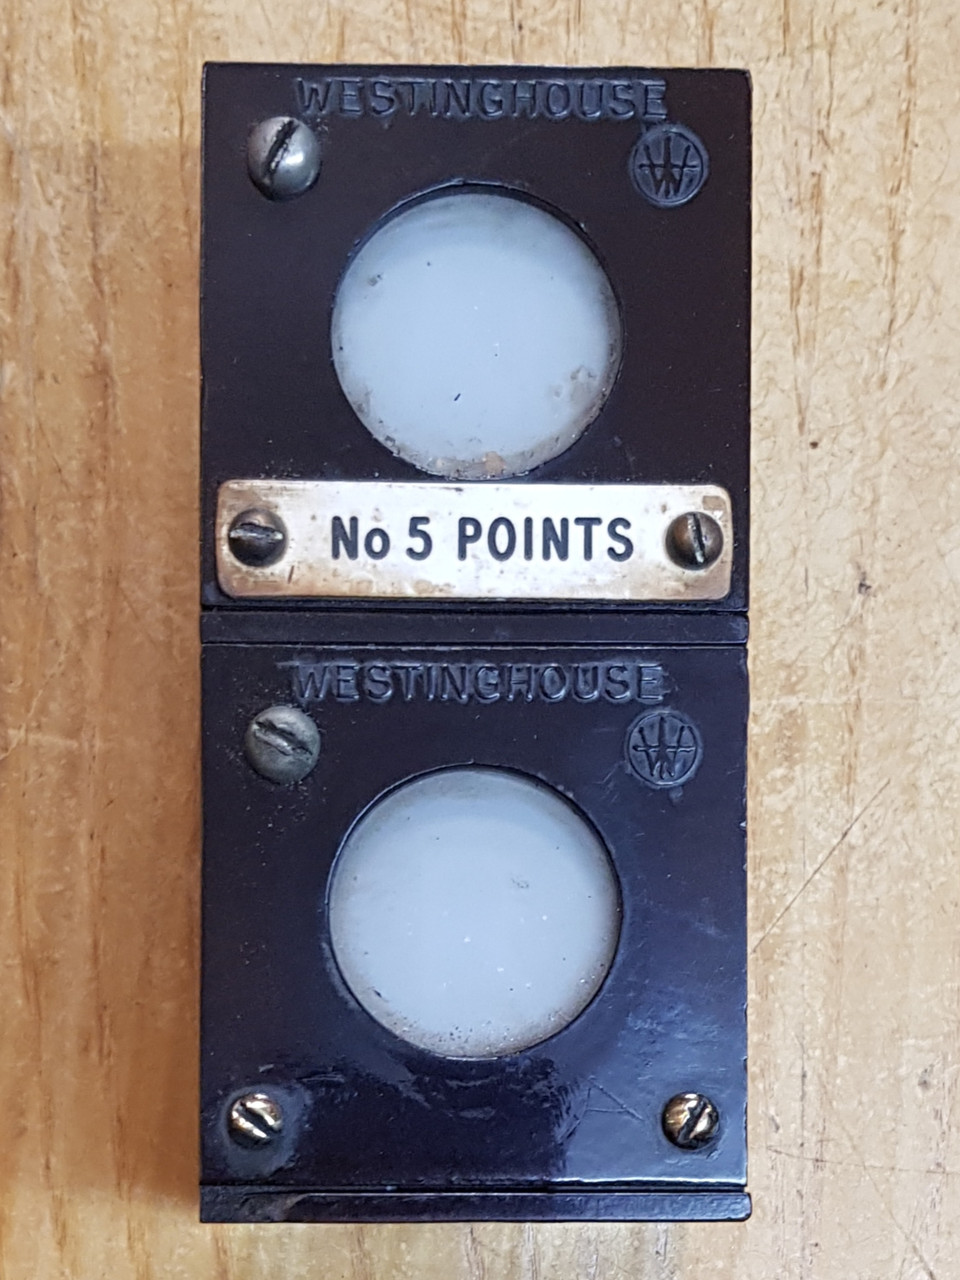 VT 3175. WESTINGHOUSE BAKELITE NO 5 POINTS INDICATORS.